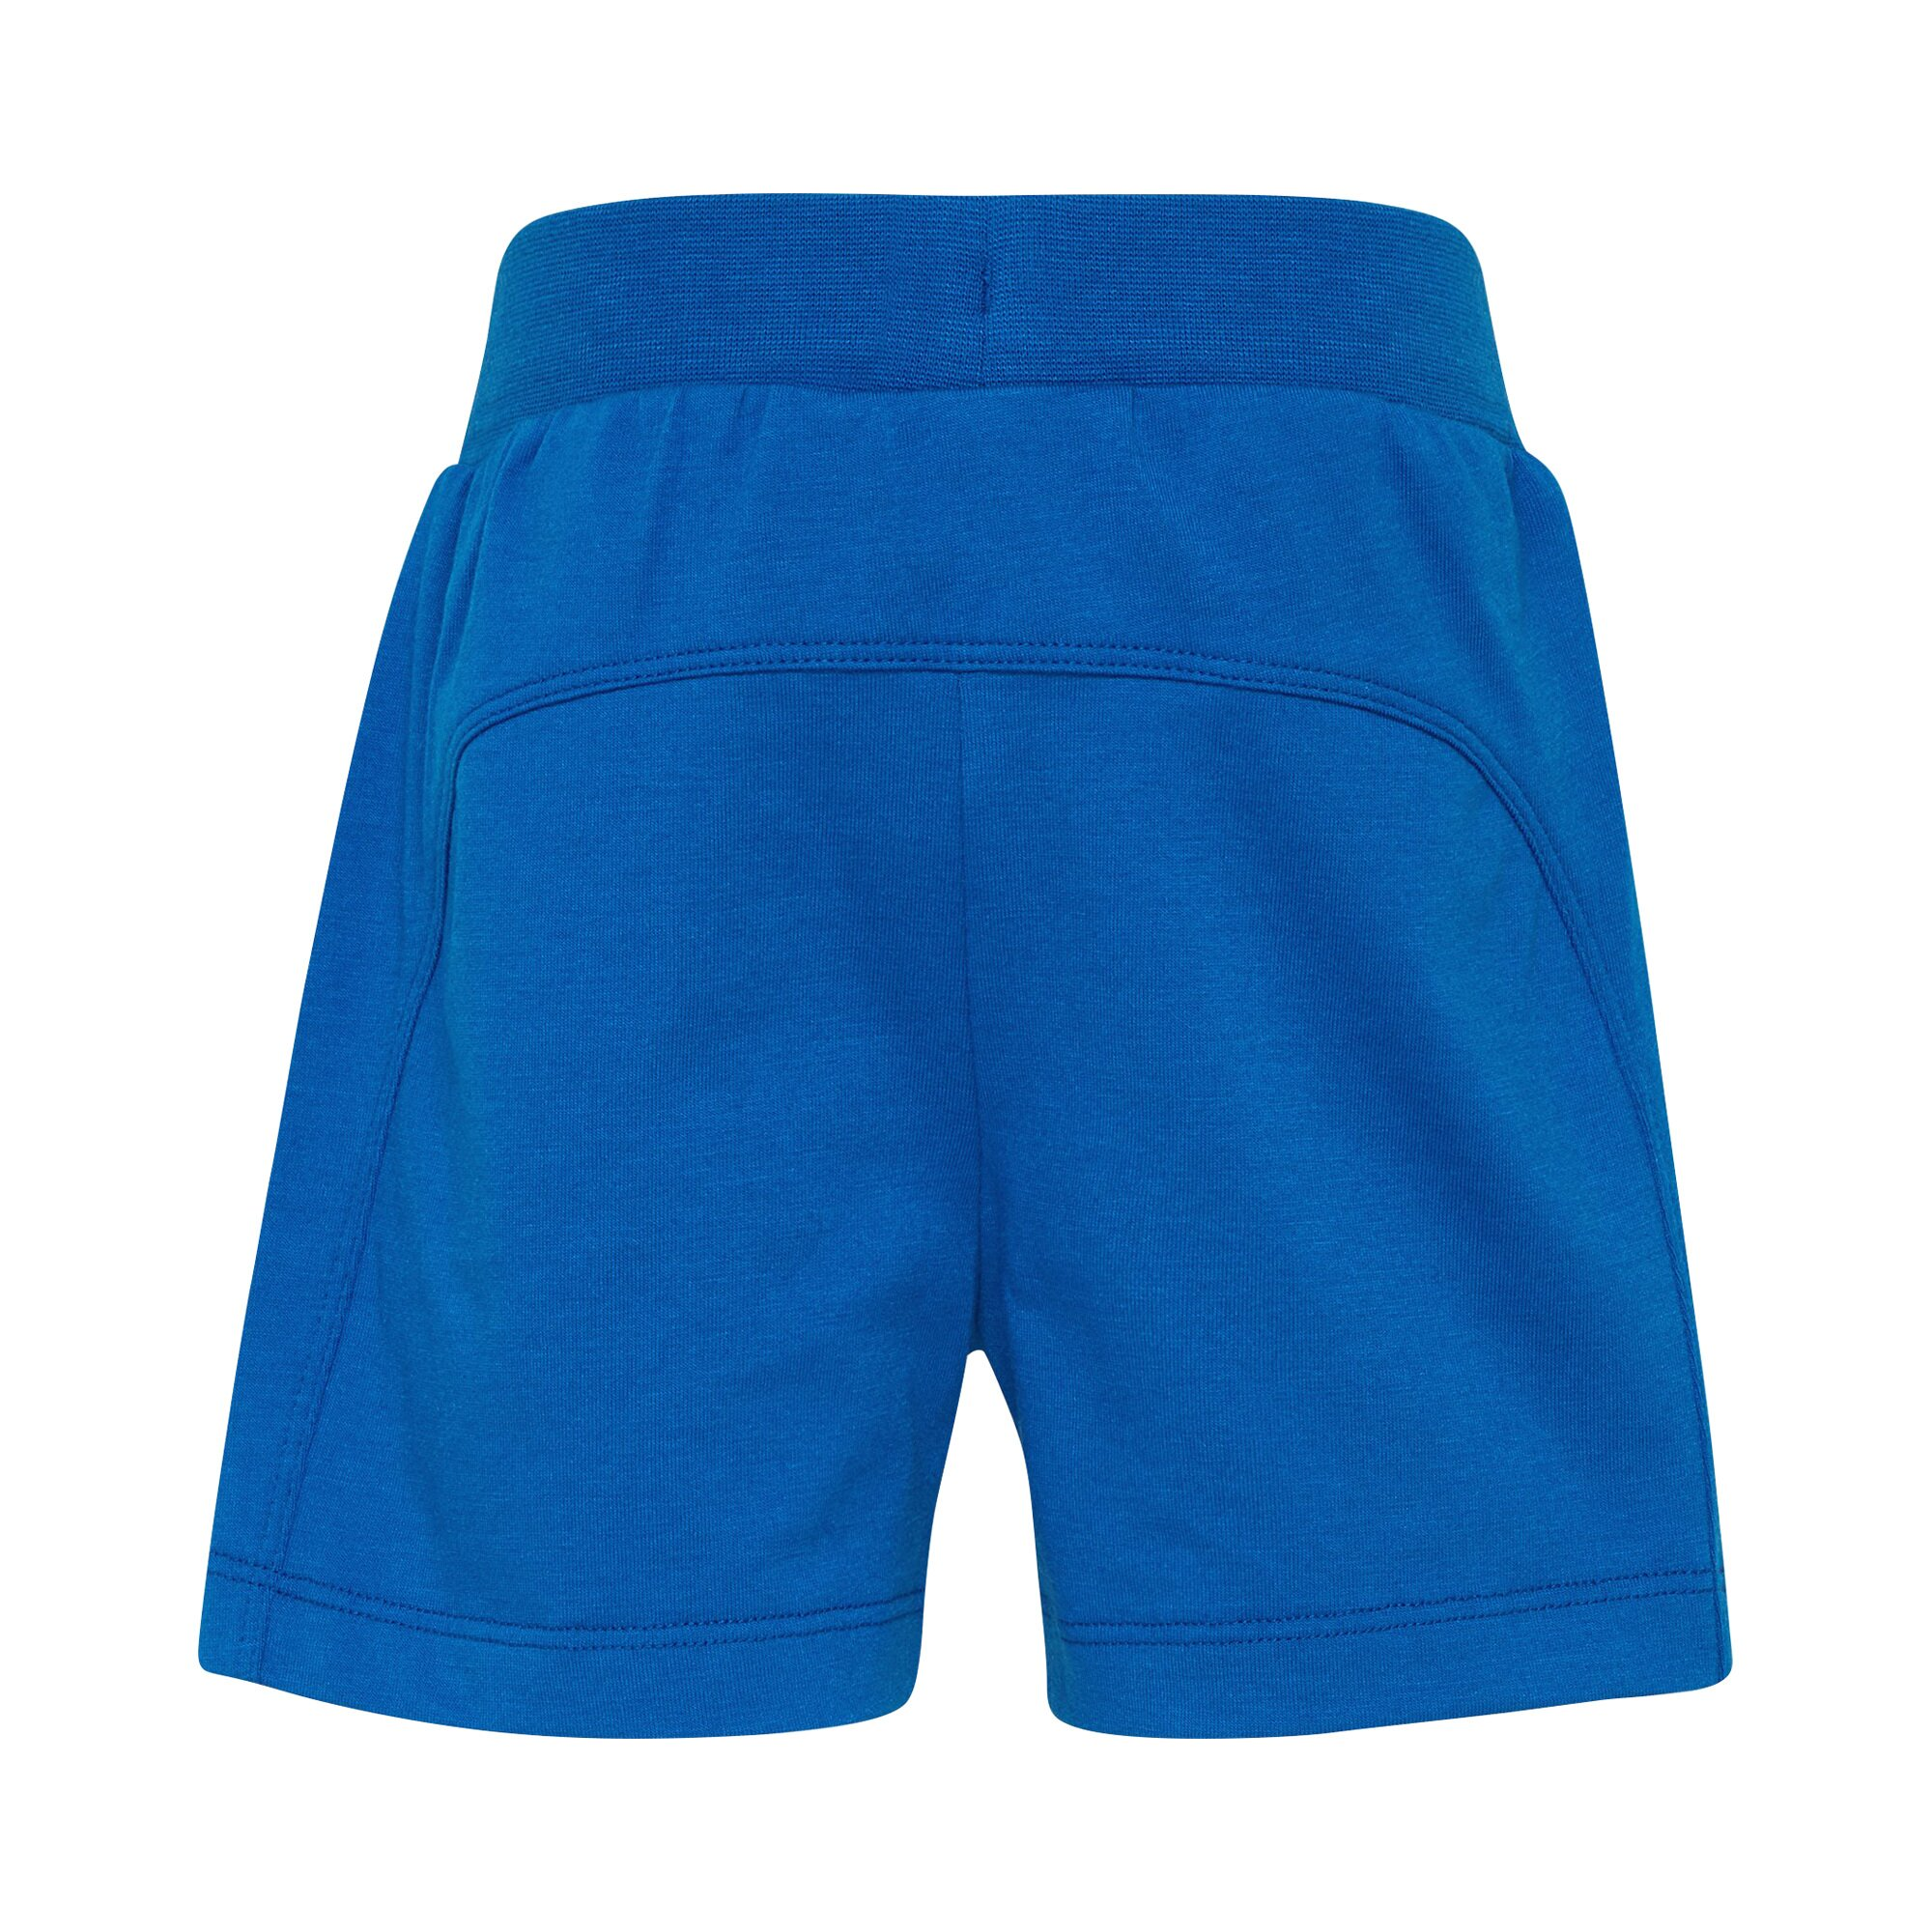 lego-wear-shorts-pan